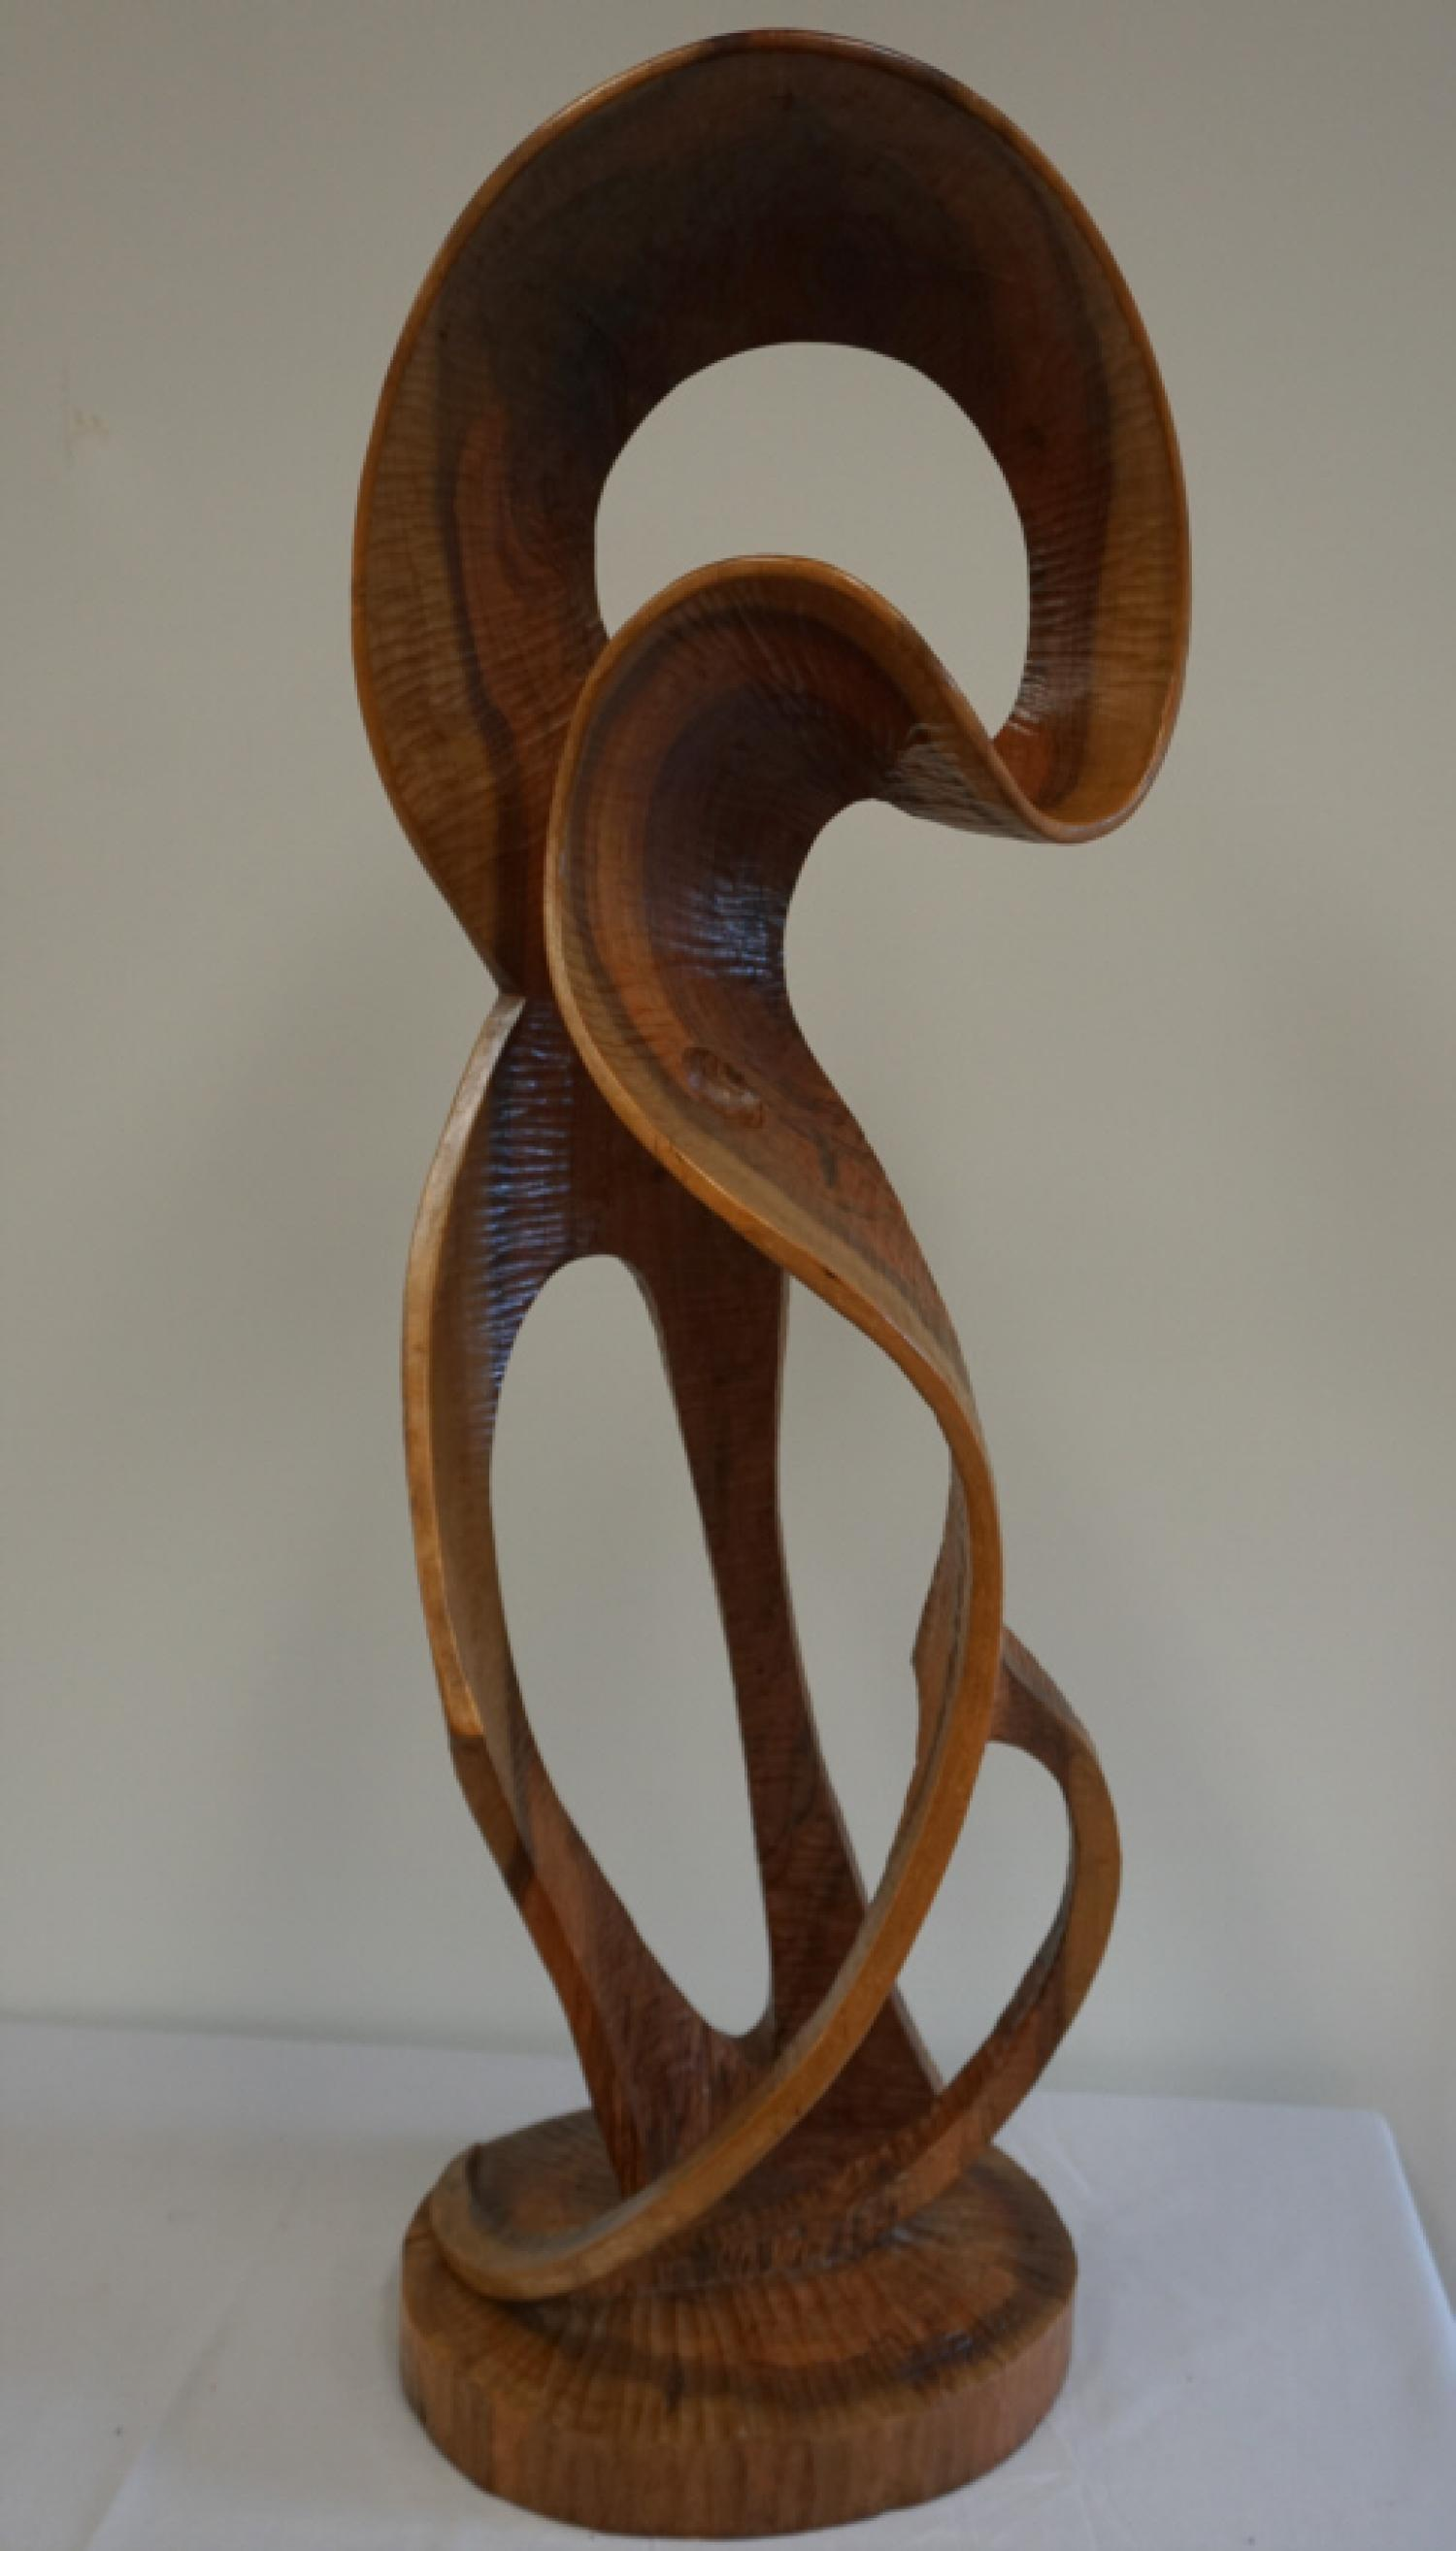 Spanish abstract wood sculpture signed Pozo 77